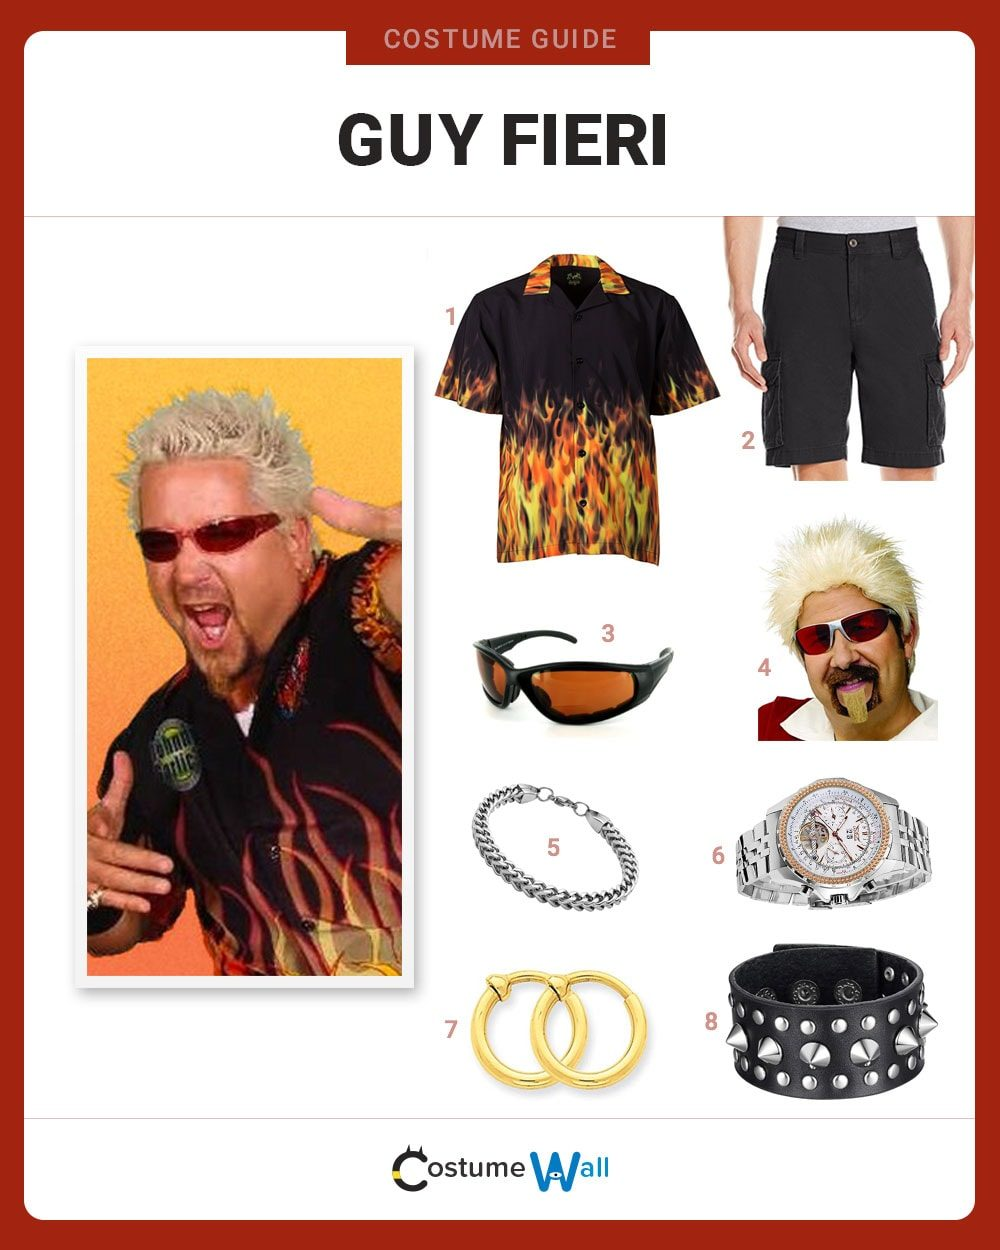 Guy Fieri Costume Guide